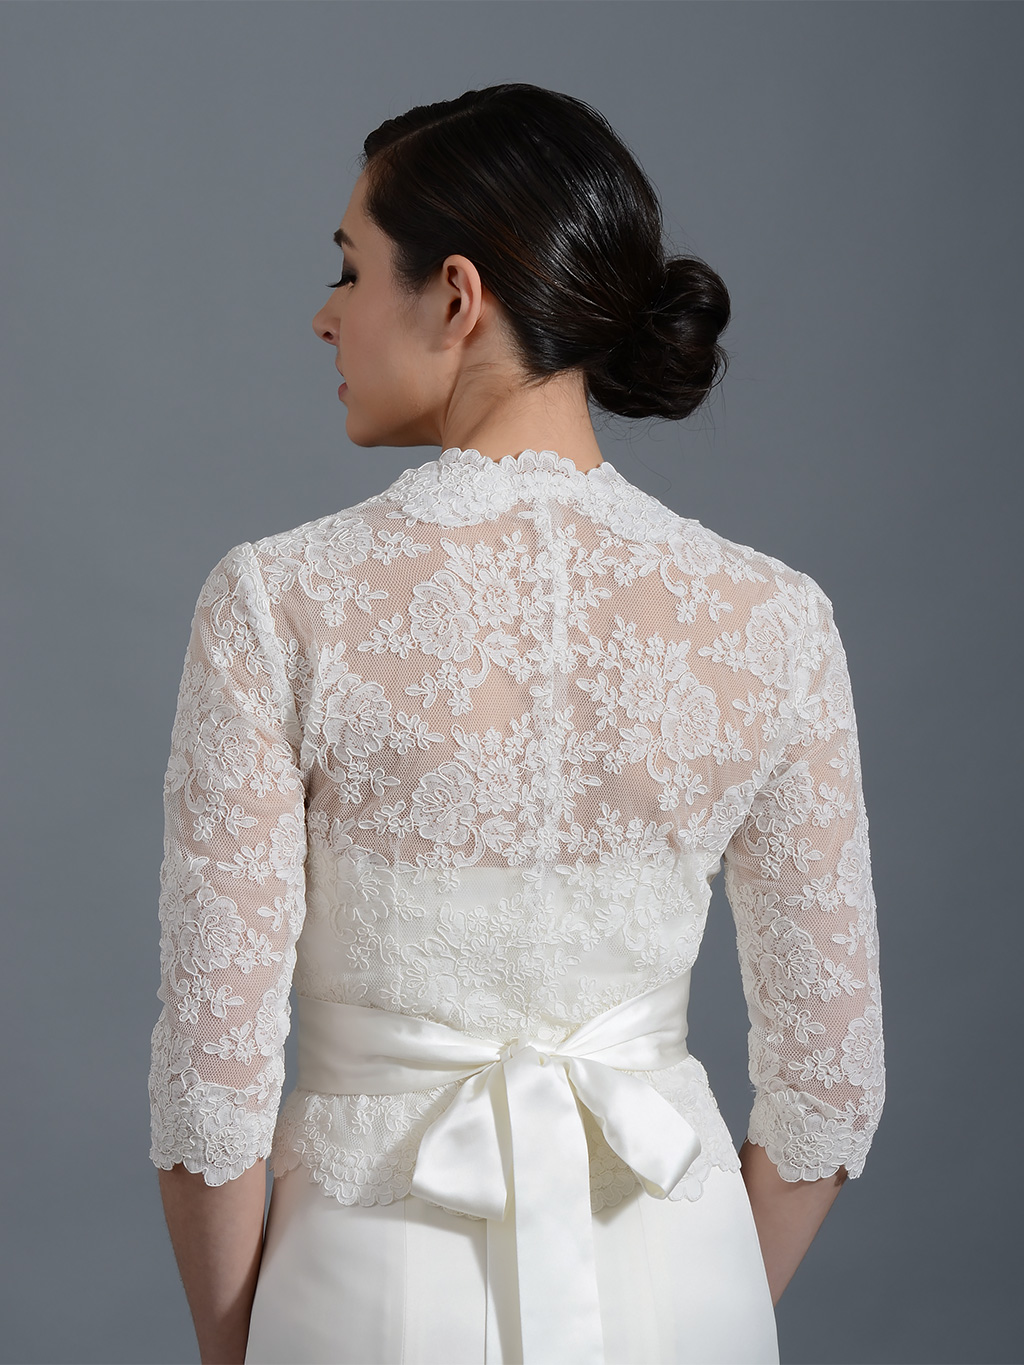 Incredible Lace Bolero Jacket 1024 x 1365 · 369 kB · jpeg